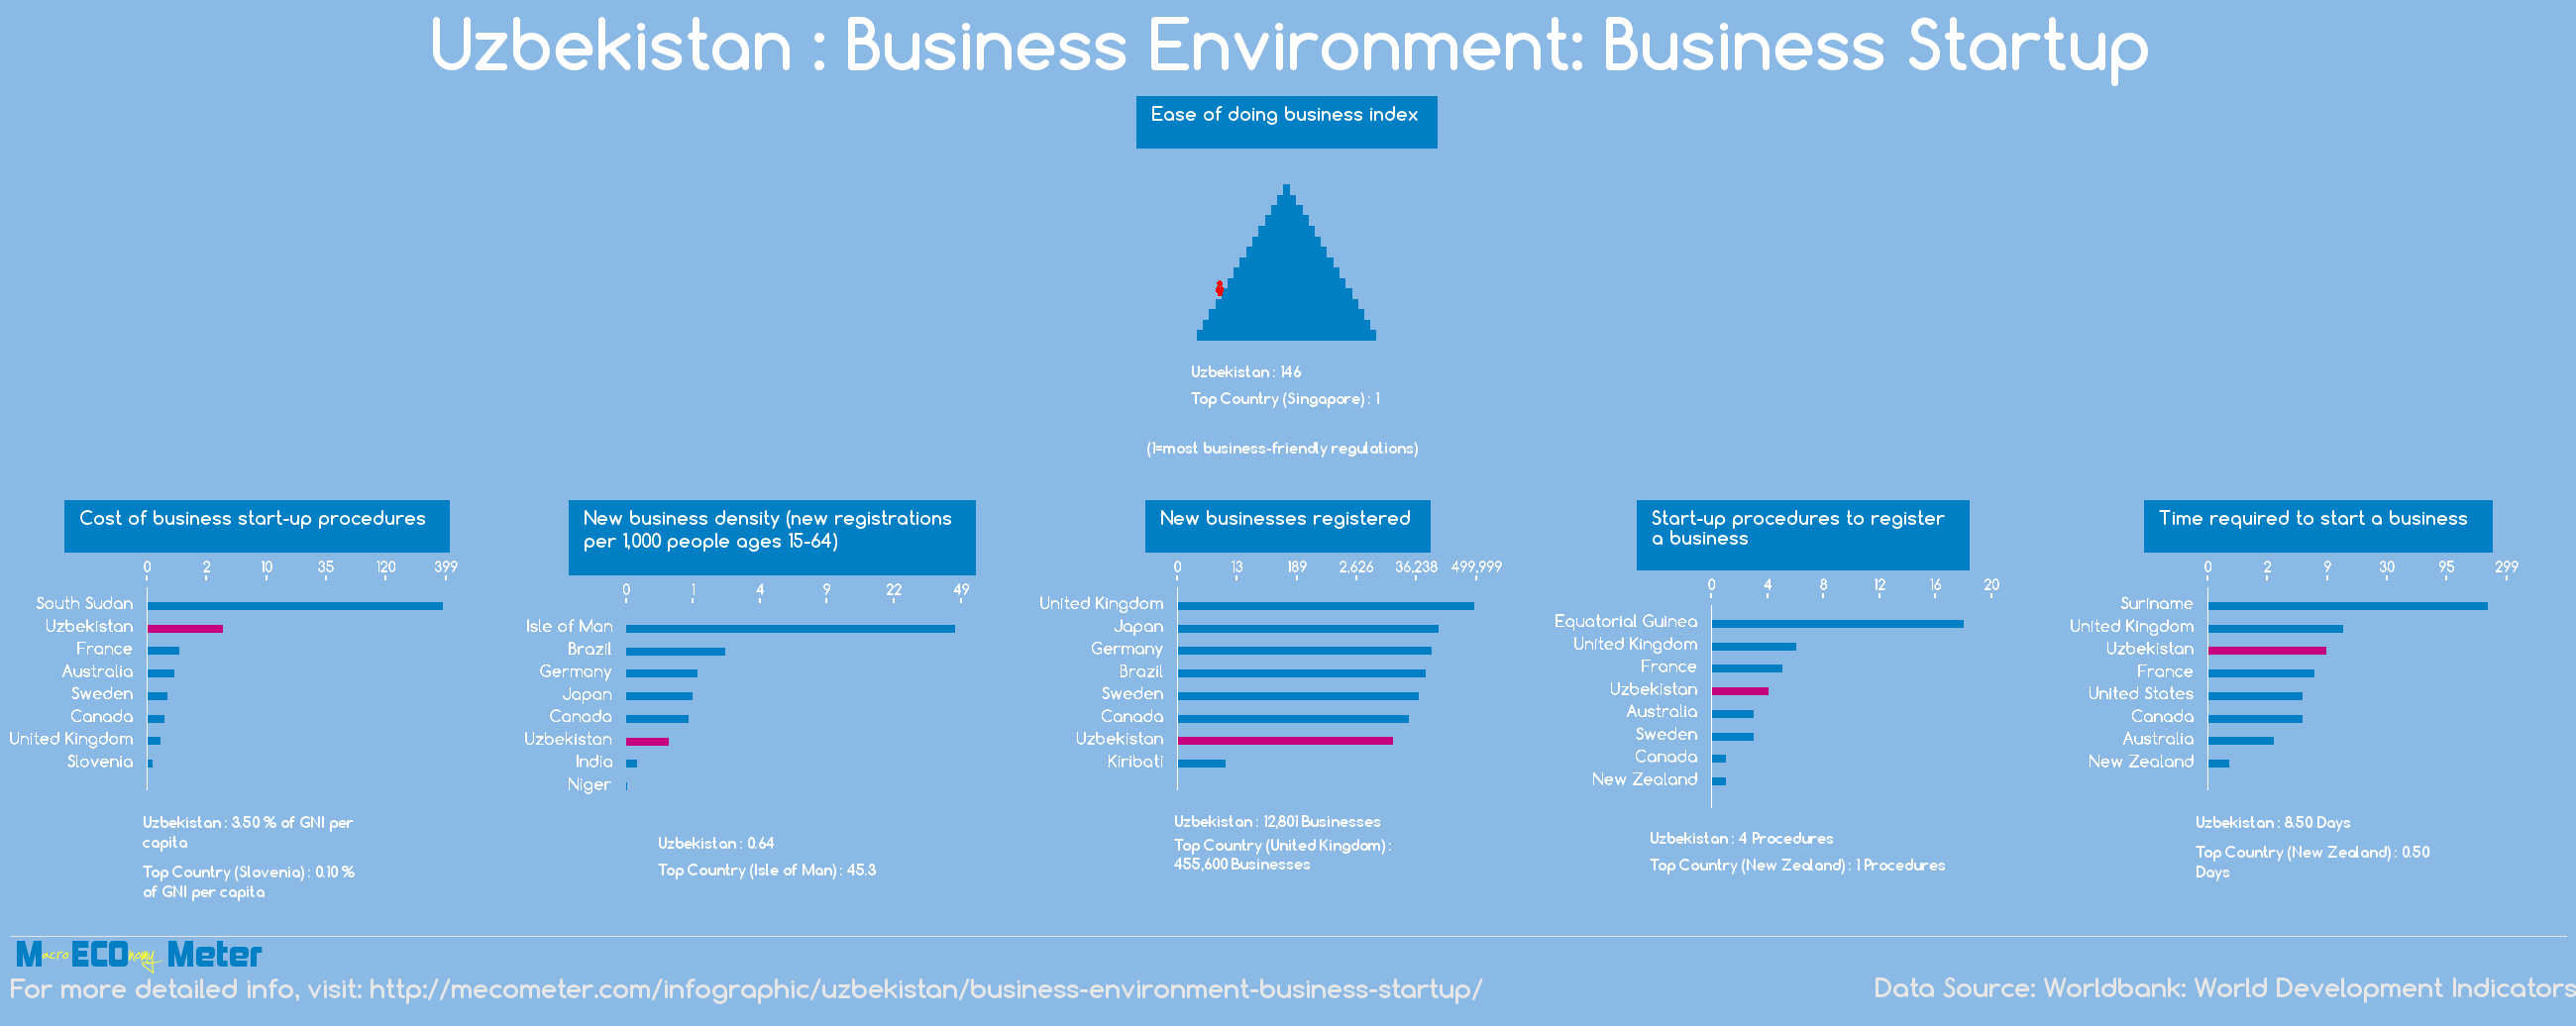 Uzbekistan : Business Environment: Business Startup